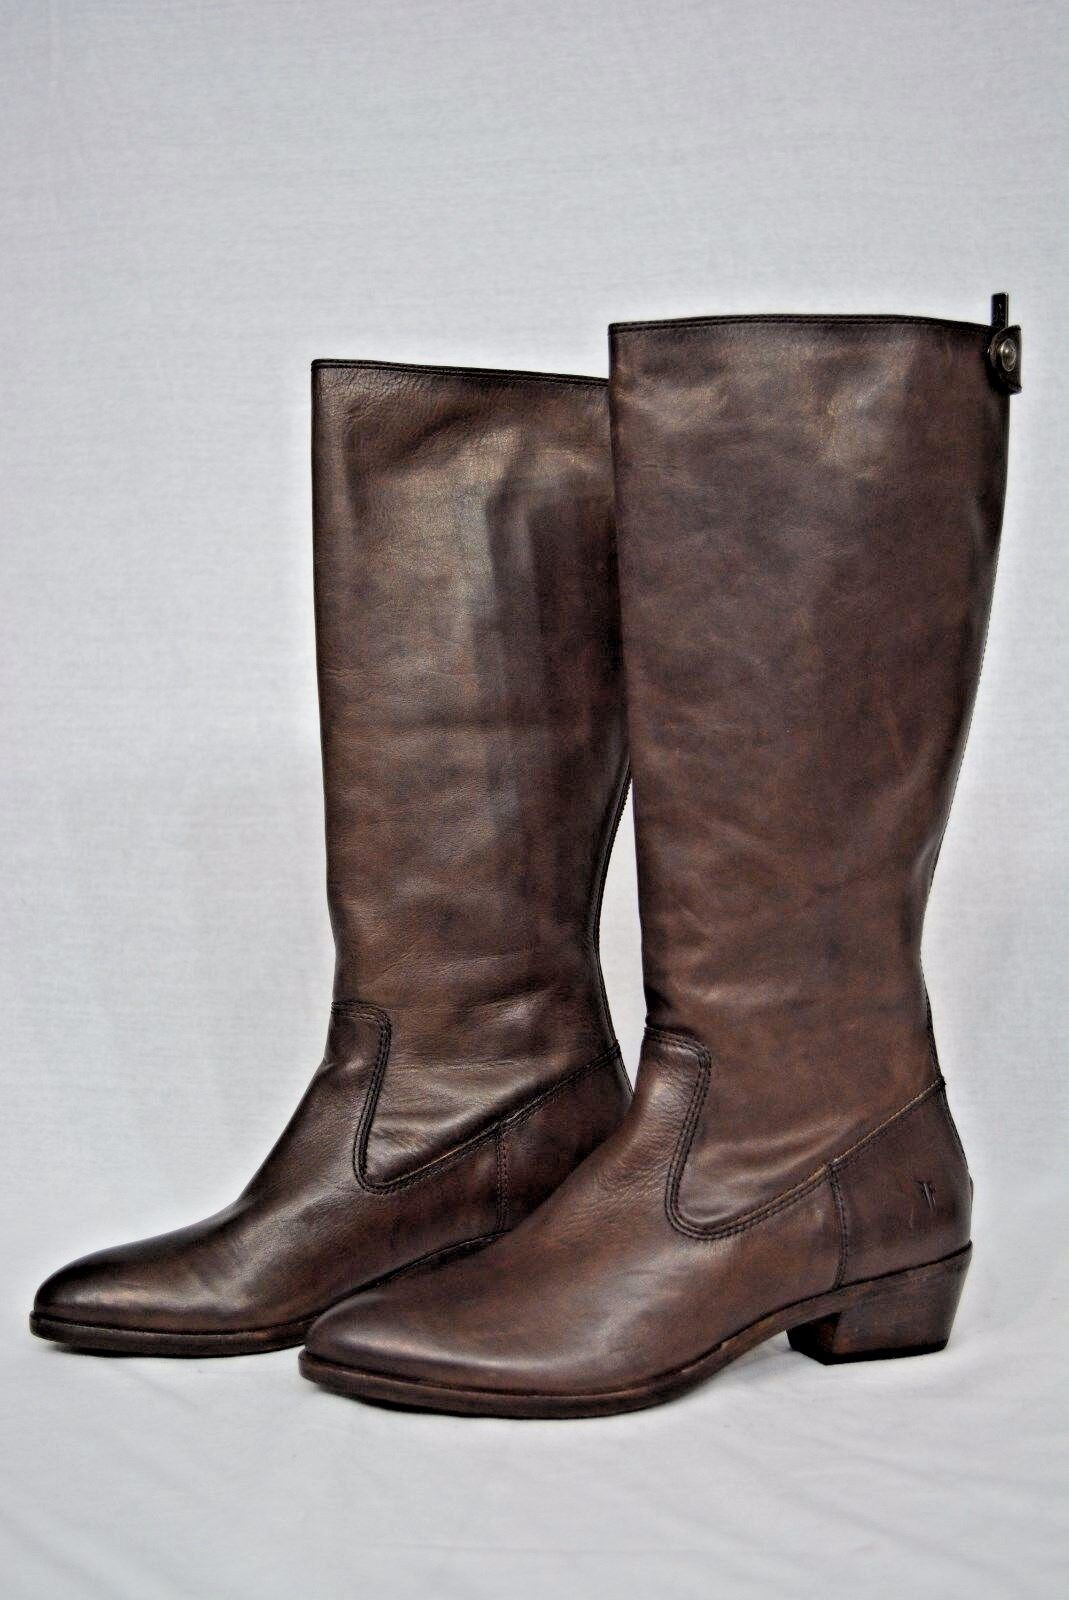 NEW  Frye Ruby Tall Boots in Charcoal color. Brown Leather Boots Size 7.5 M